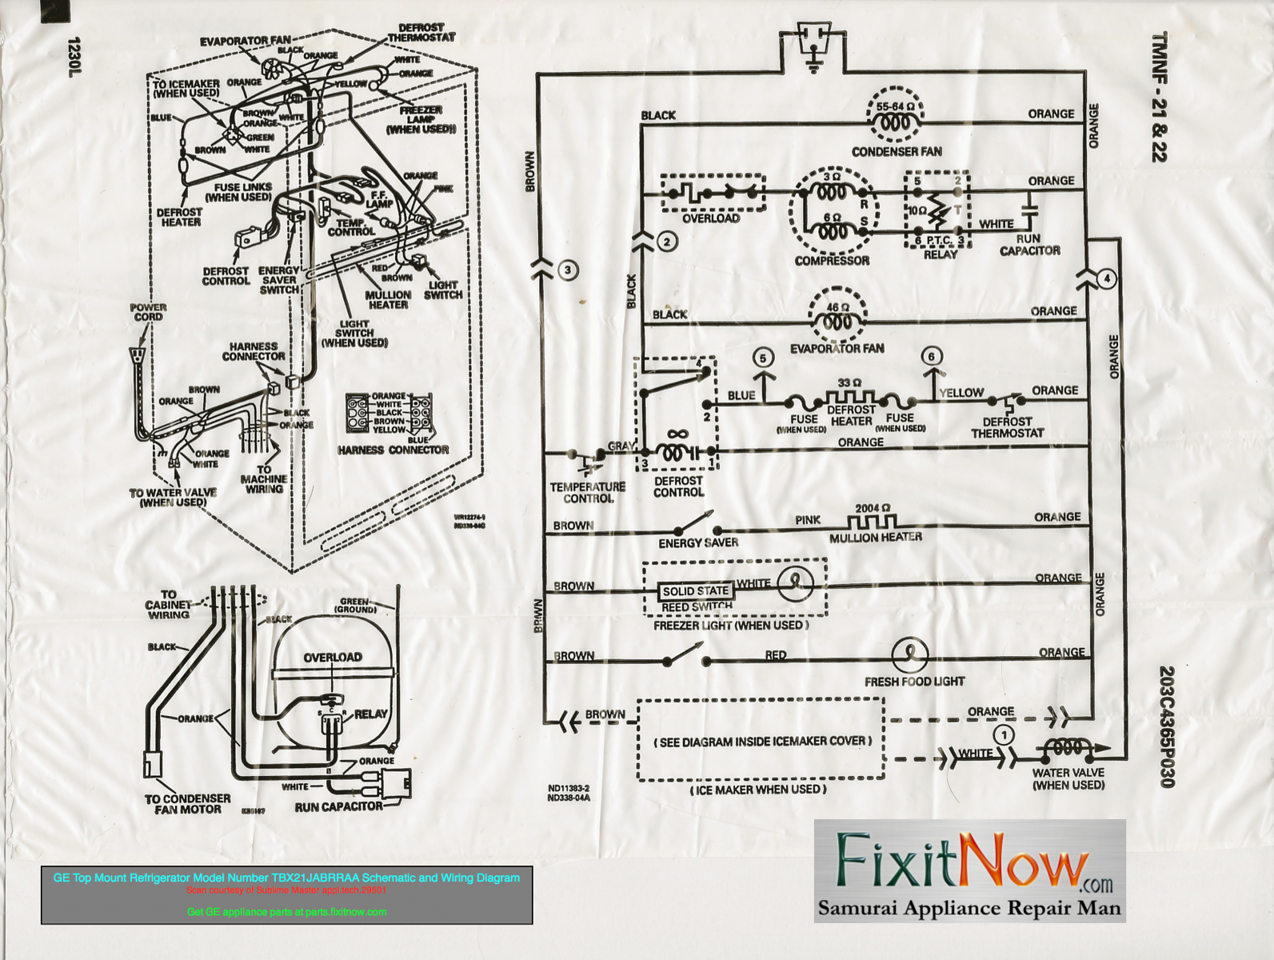 Wiring Diagrams and Schematics appliantology – Diagram Wiring